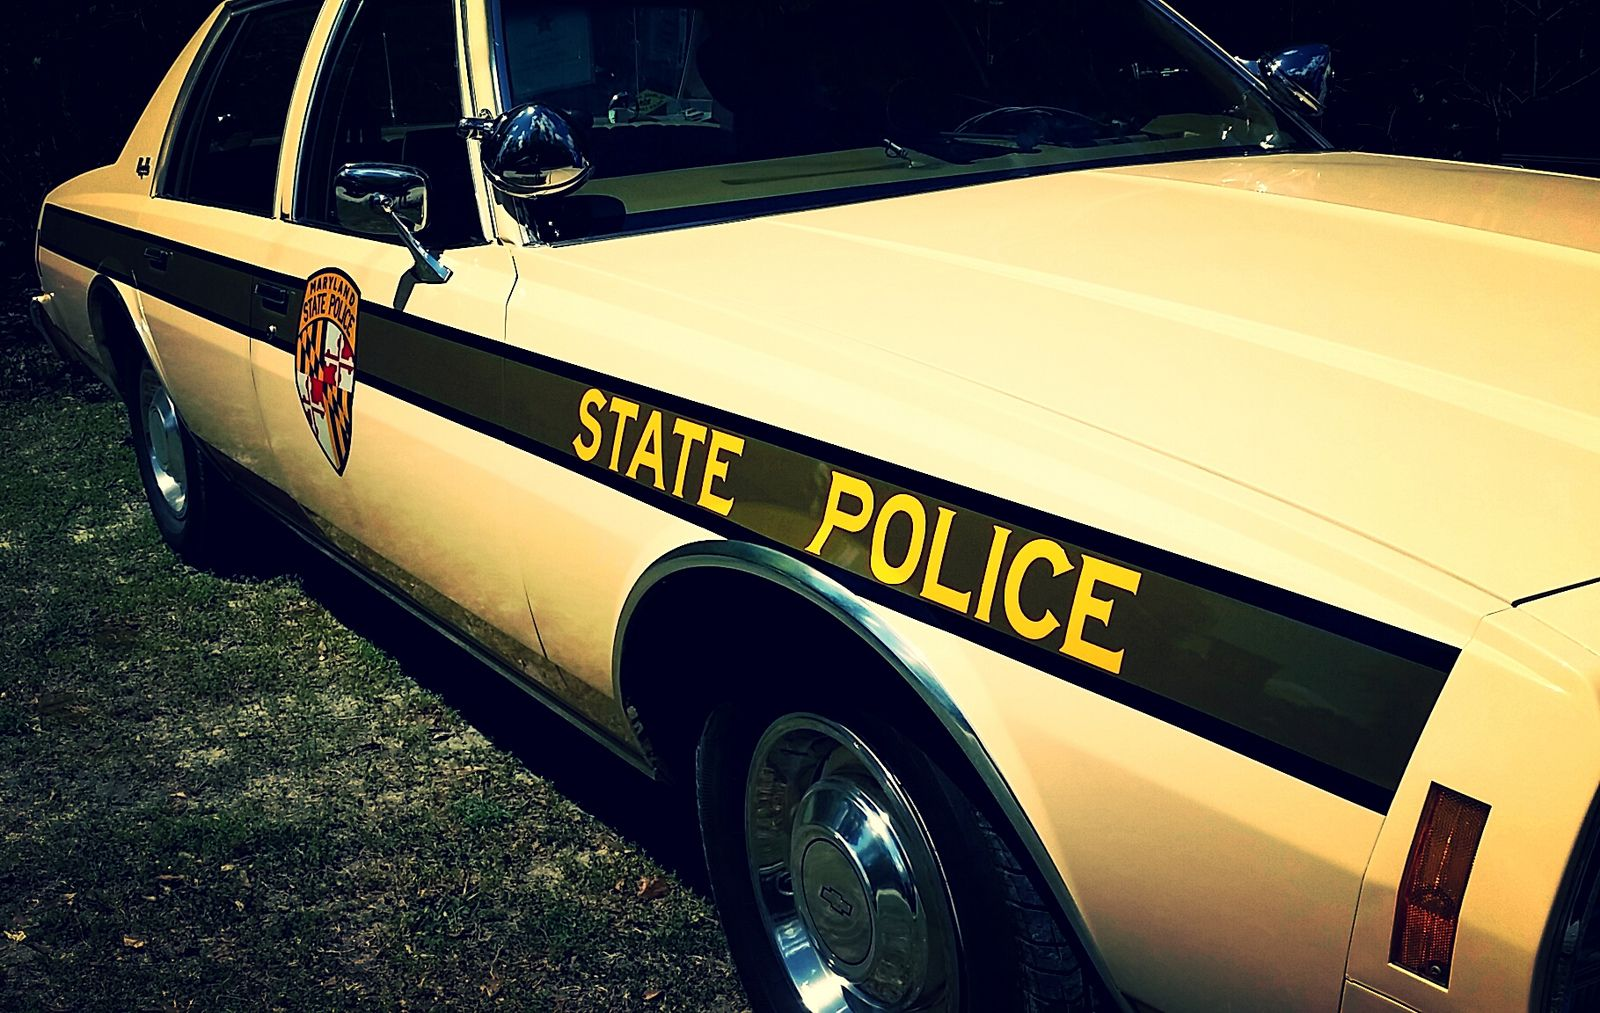 Vintage Chevy Impala / old Maryland State Police   State police ...